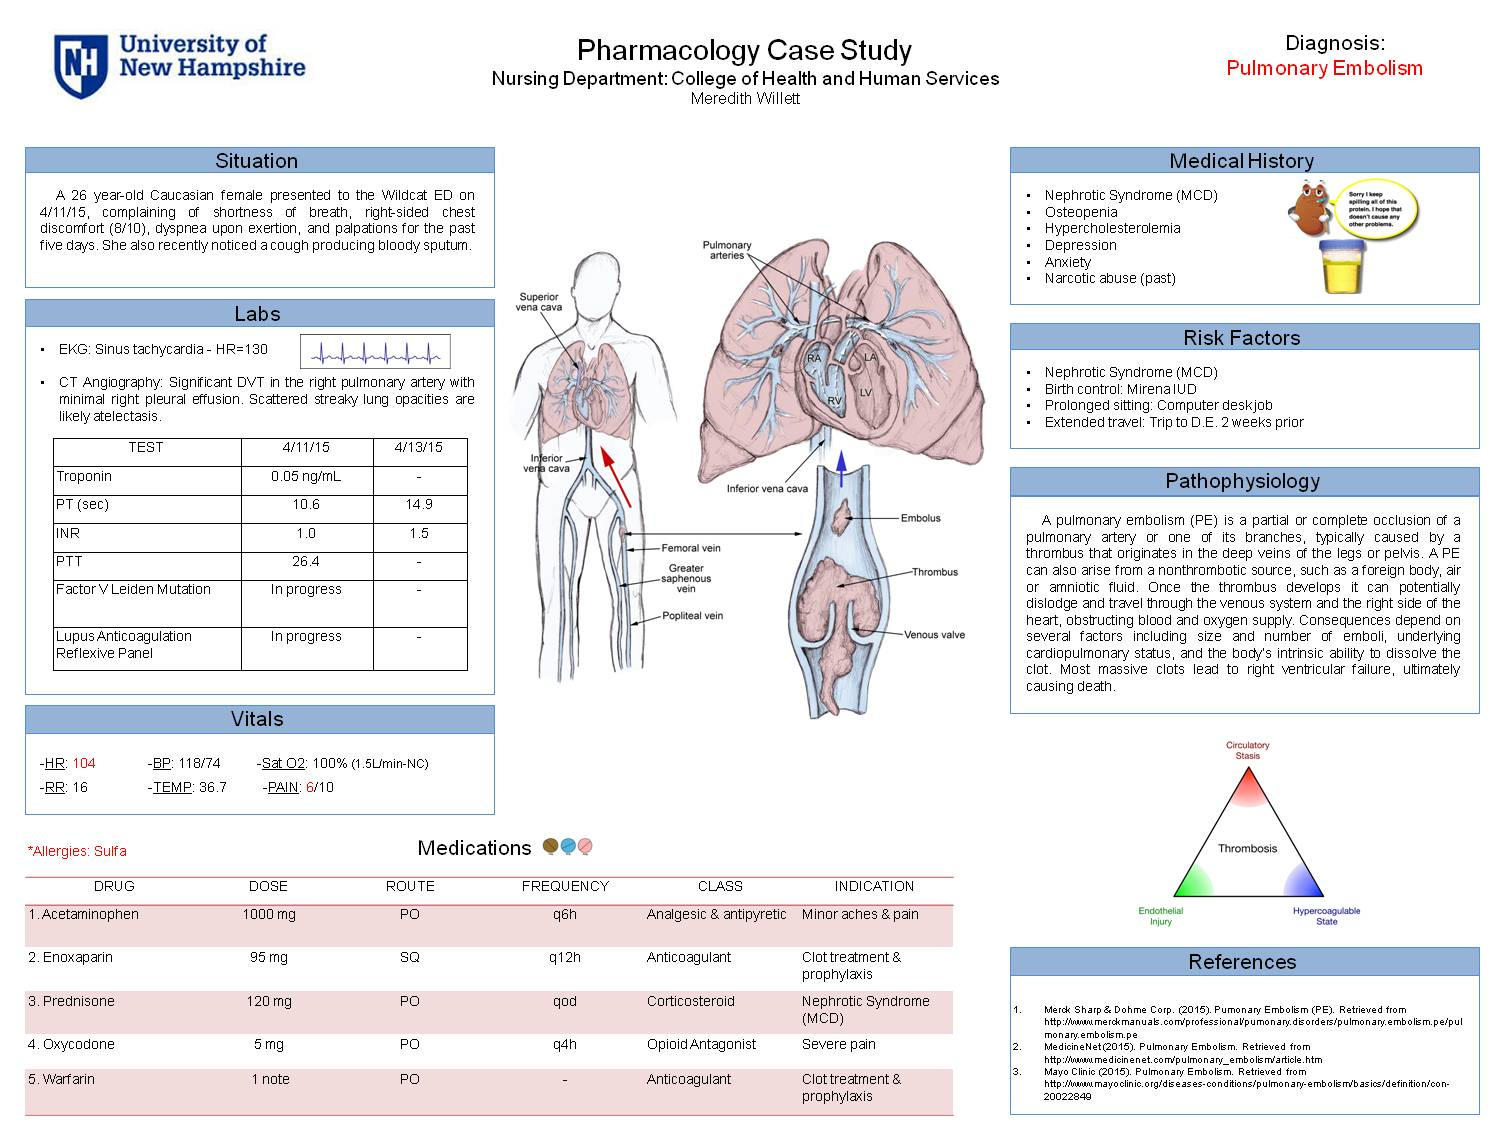 Pharmacology Case Study by mpwillett